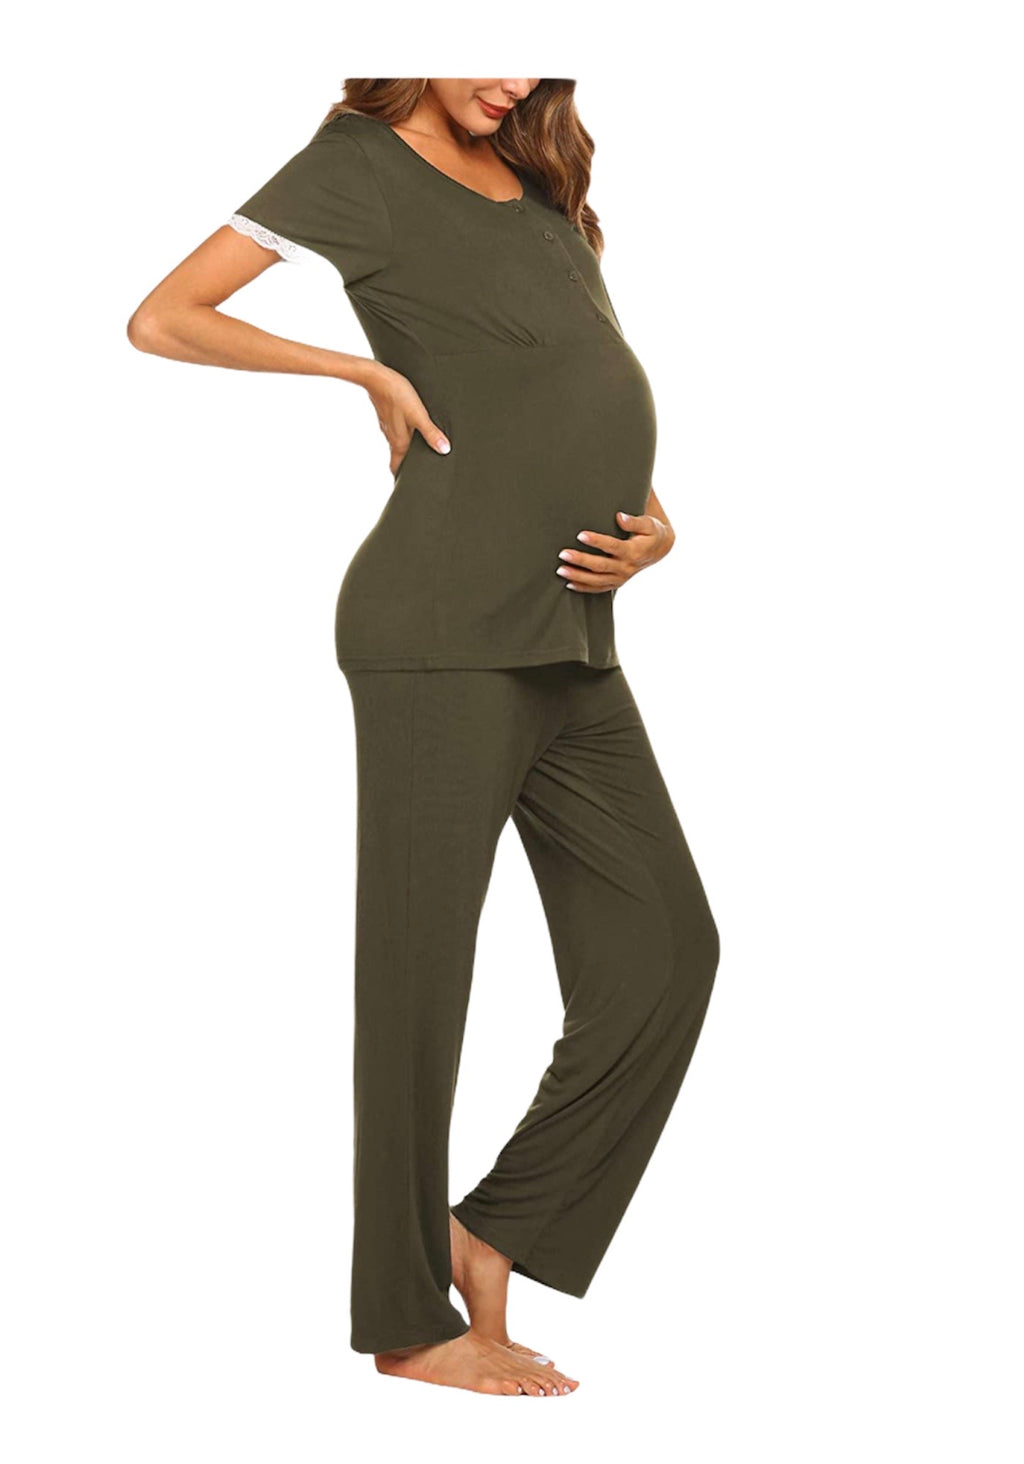 Lightweight Nursing Pajama Set